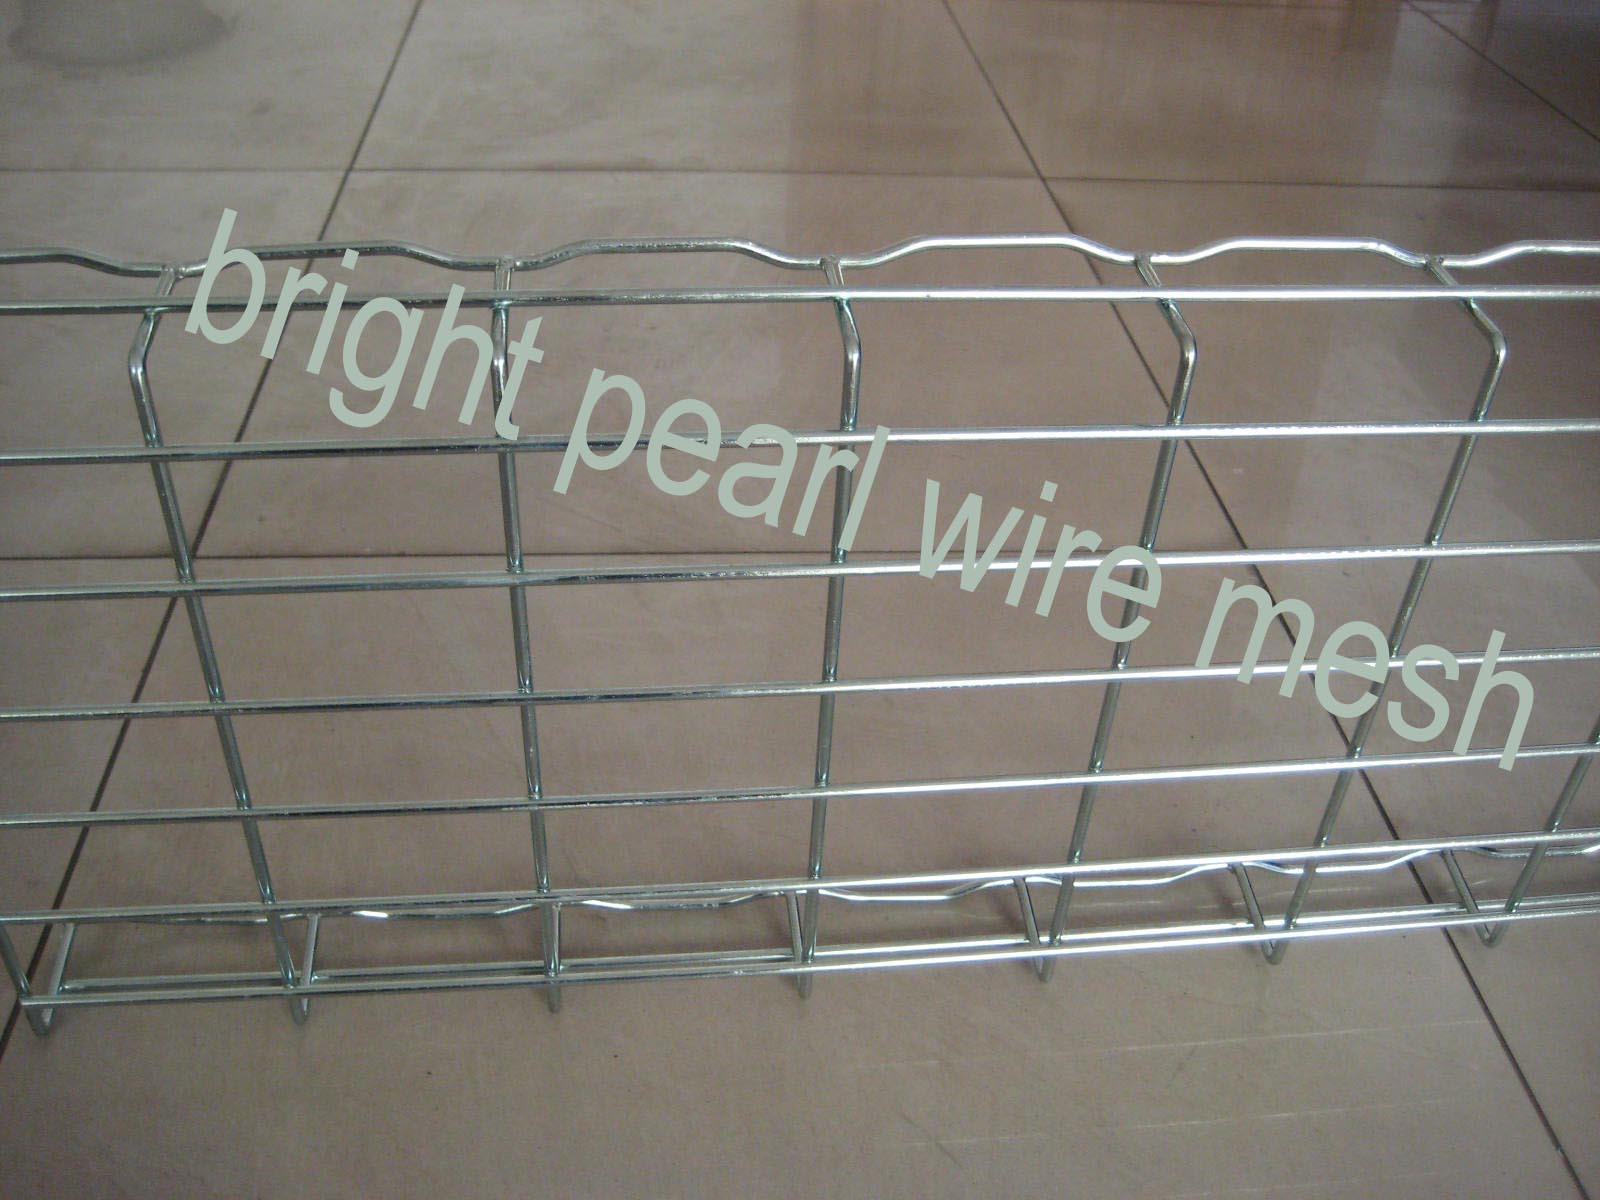 wire mesh cable tray, wire mesh cable support, wire basket cable ...